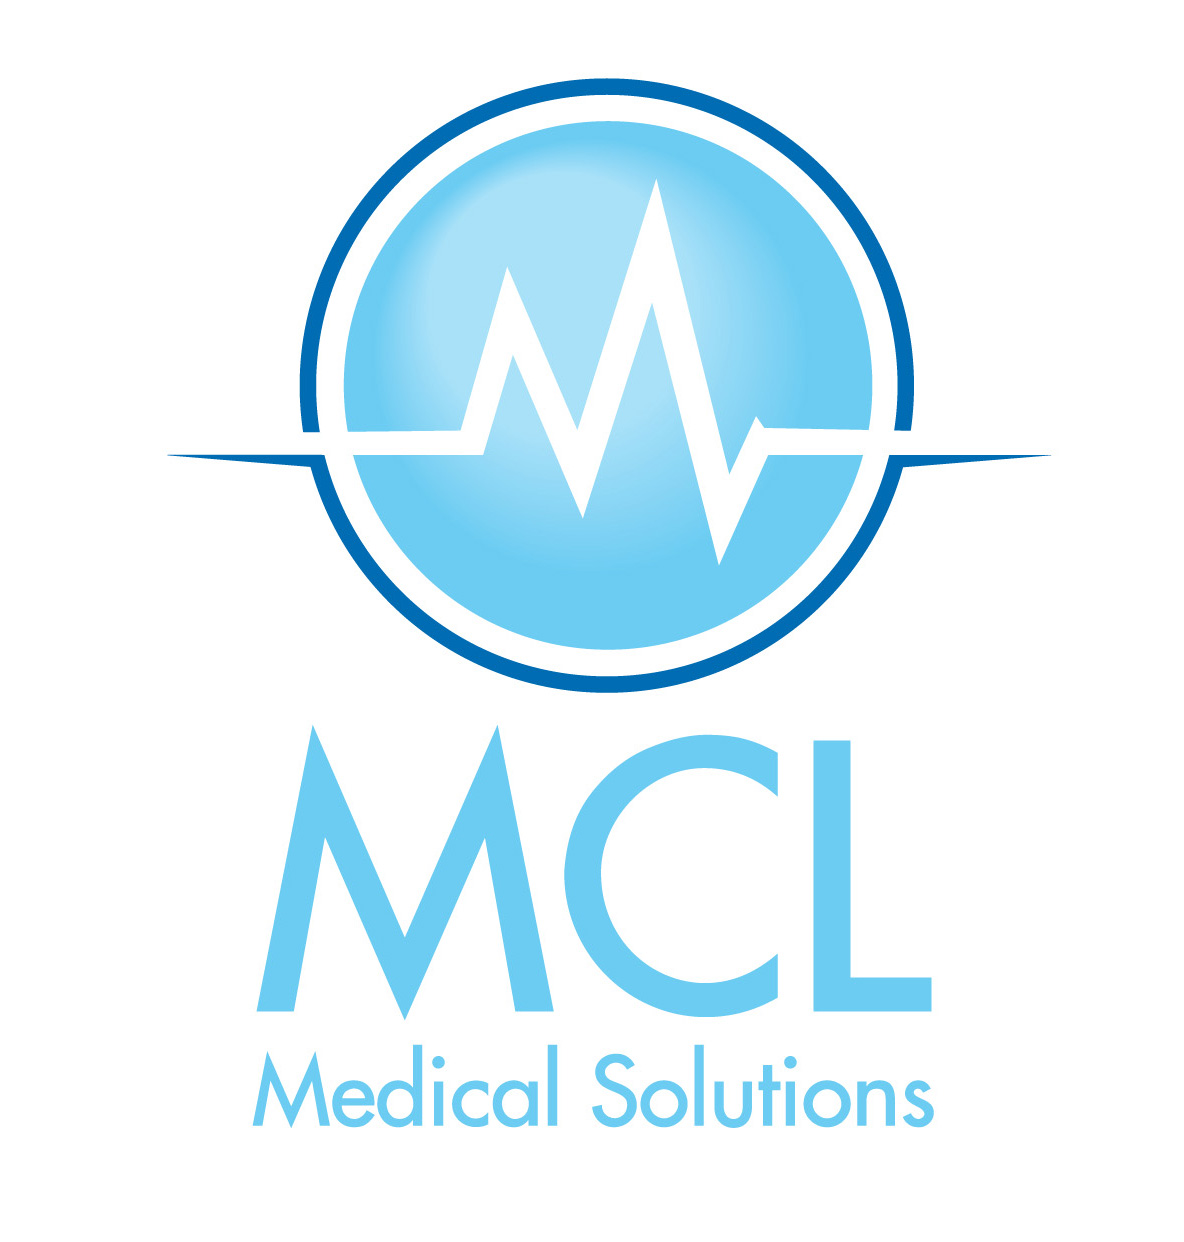 Emejing Medical Logo Design Ideas Images Interior Design Ideas